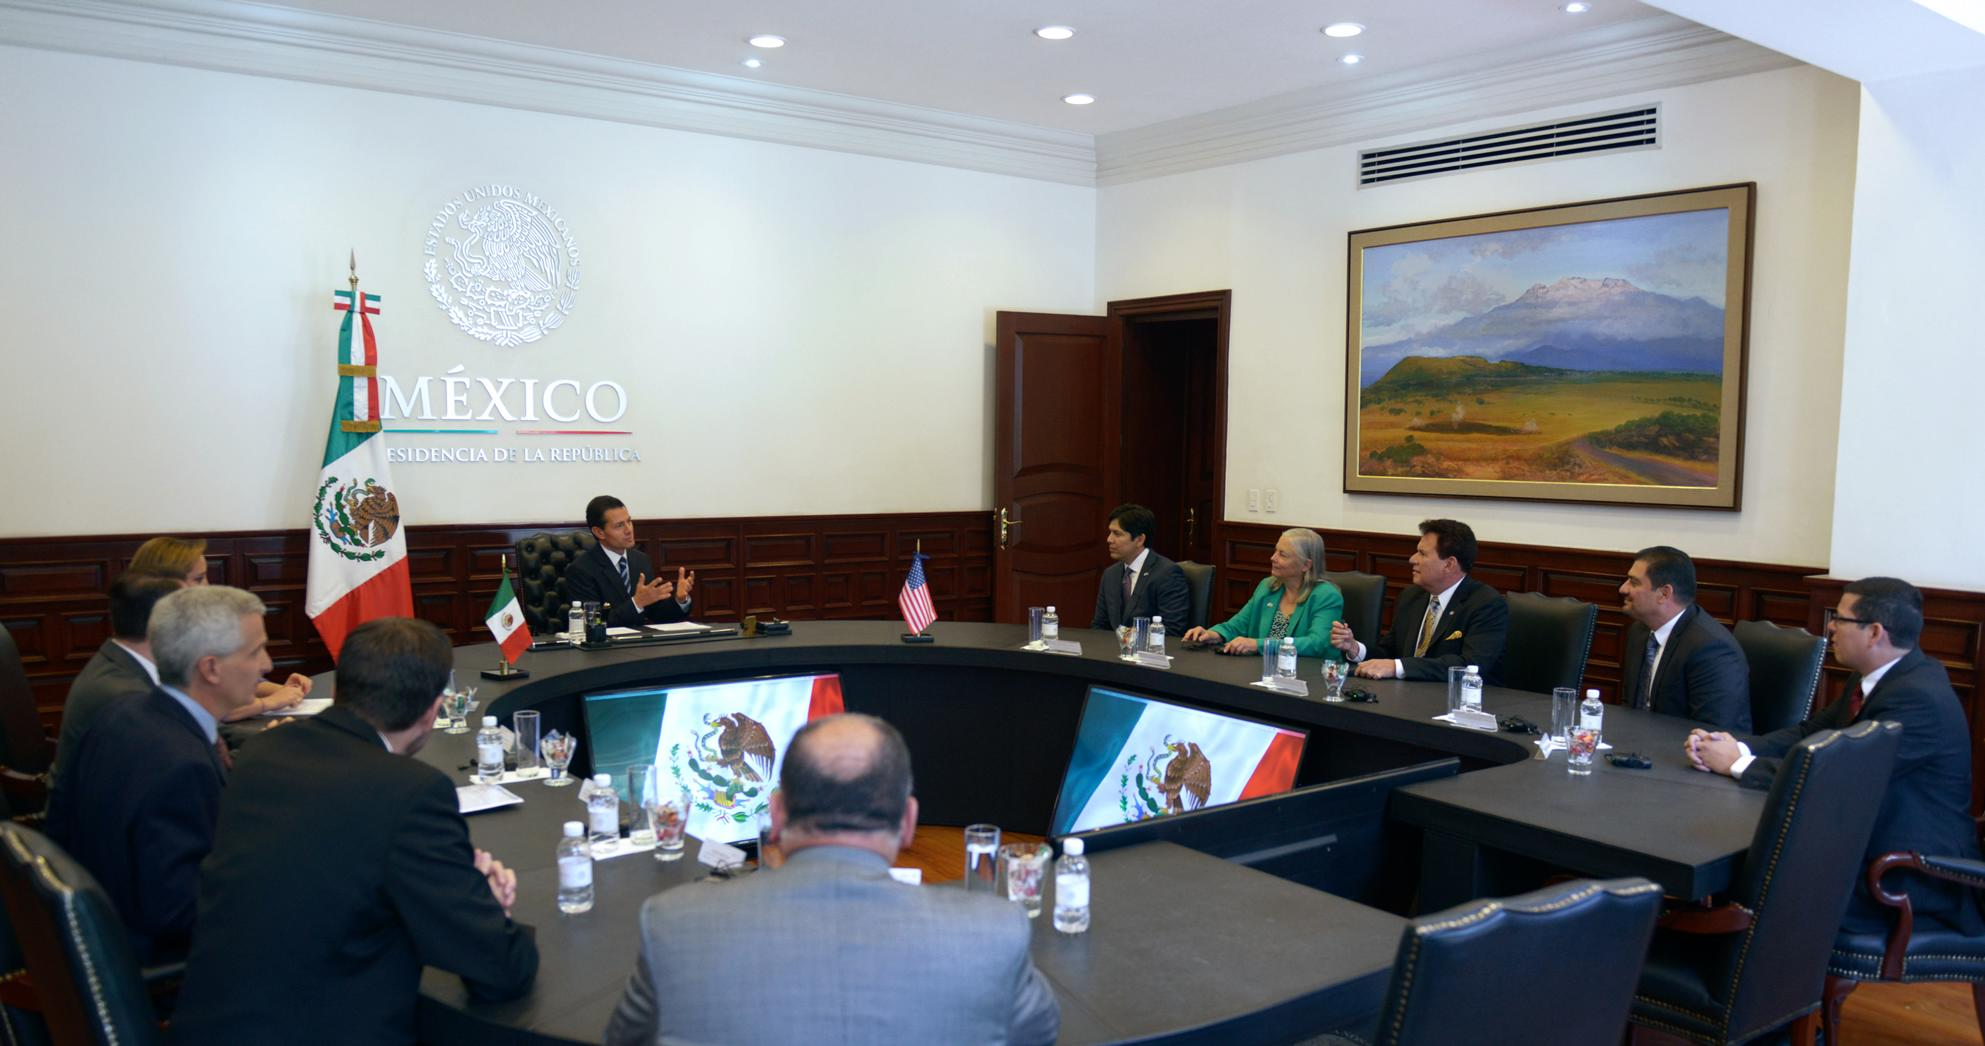 The president confirmed the government's commitment to the protection and respect for the rights of Mexicans in the United States.